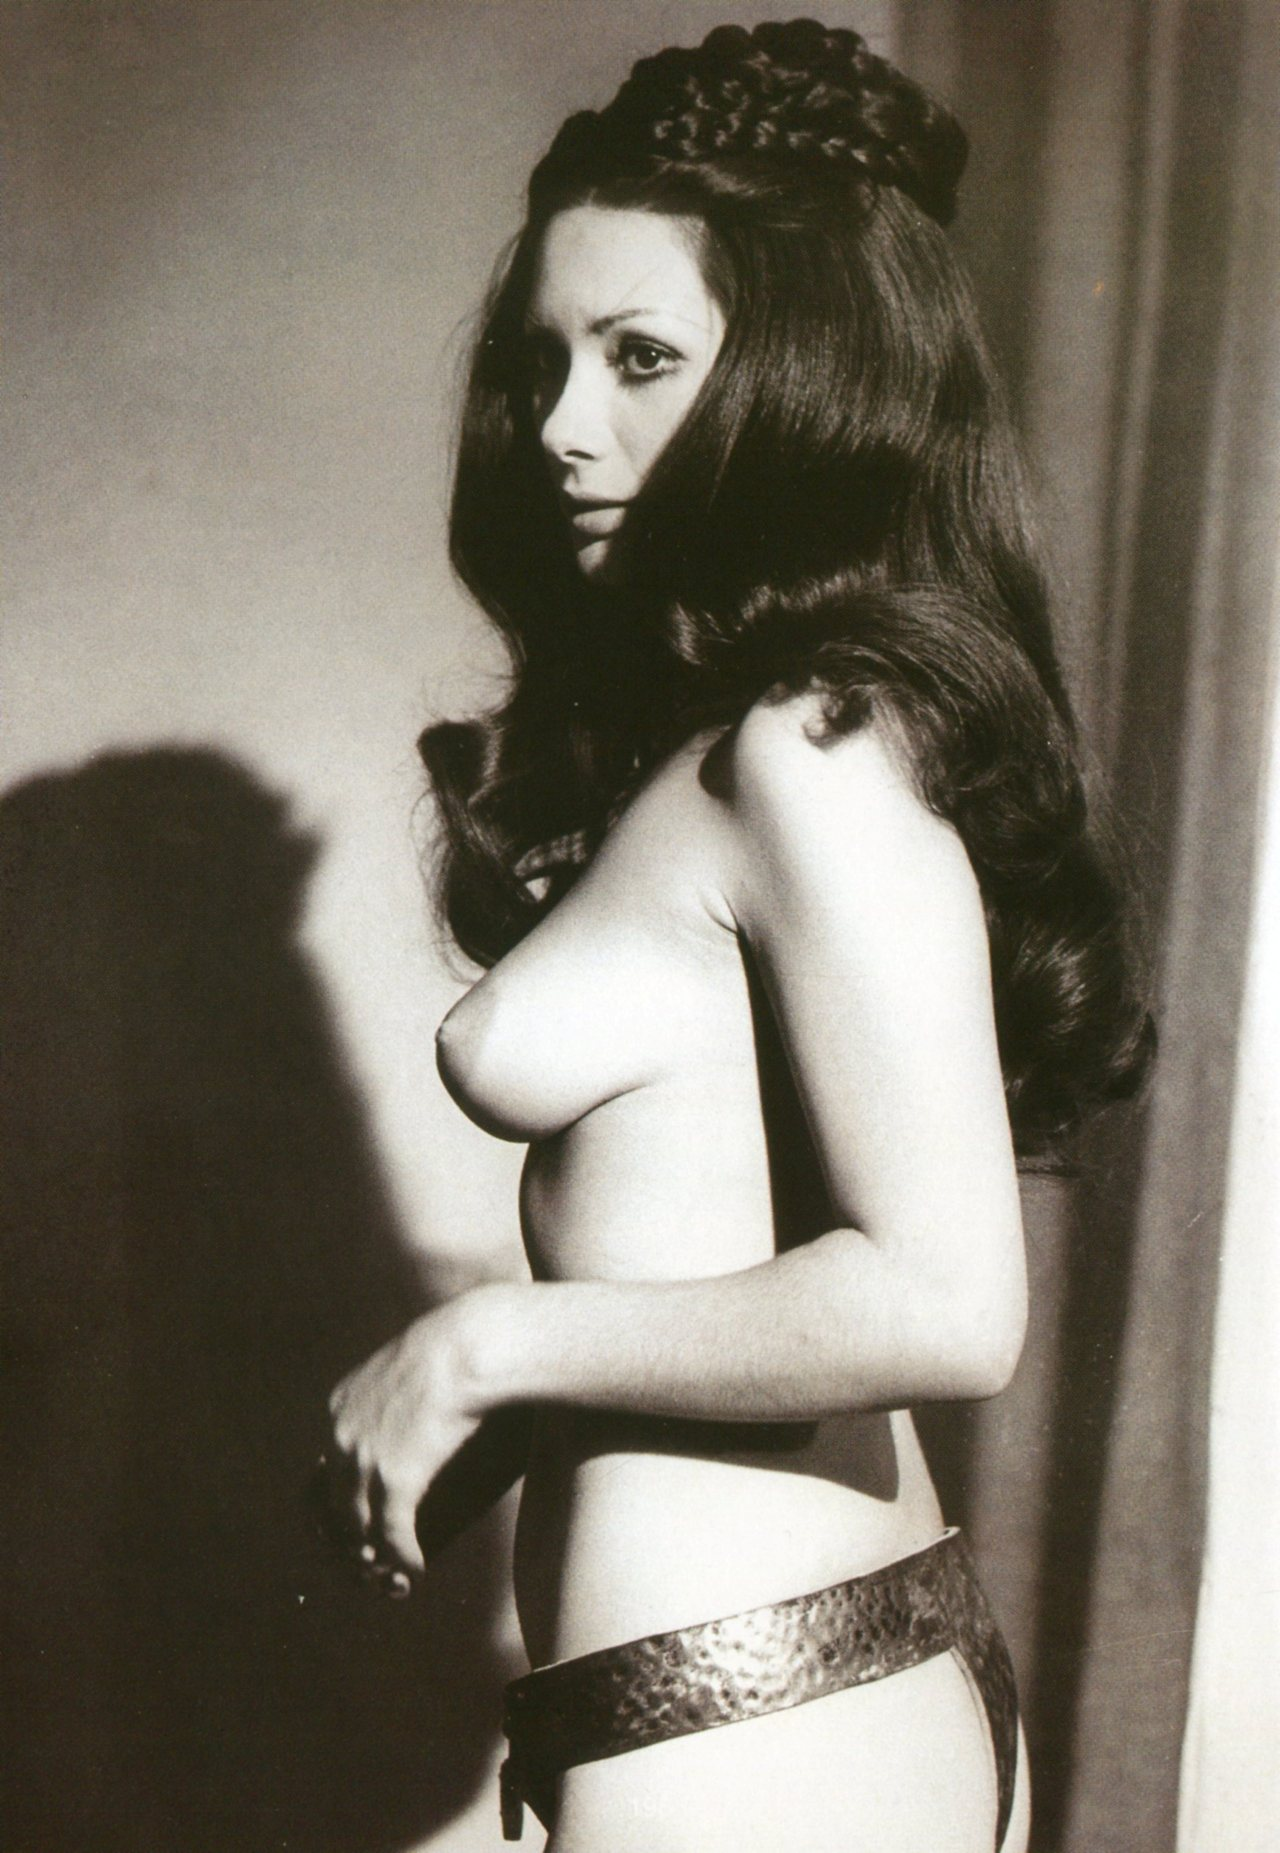 Apologise, Classic vintage nude female movie stars can find